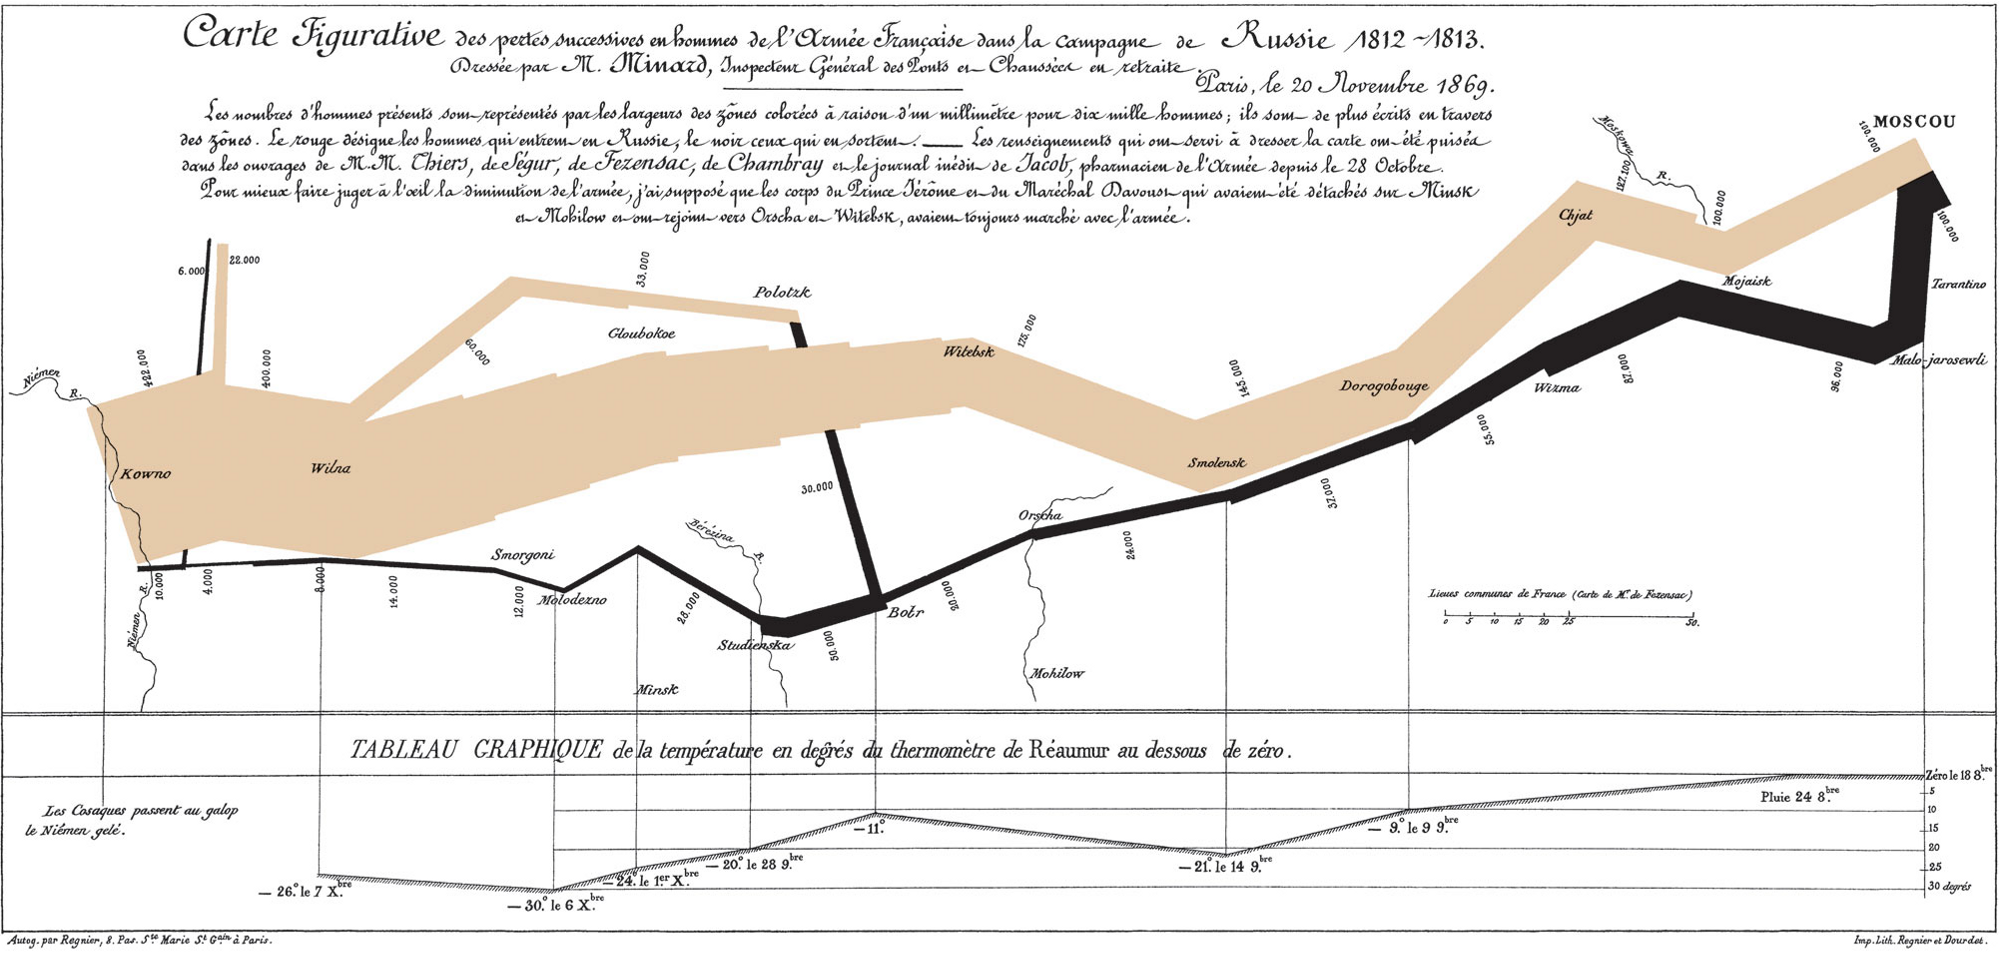 This map is probably one of the best examples of how information can be used in journey mapping by Charles Joseph Minard. It's a depiction of Napoleon's disastrous invasion of Russia which displays the size of his army at geographic locations during their march to Moscow and their retreat, along with temperature data.